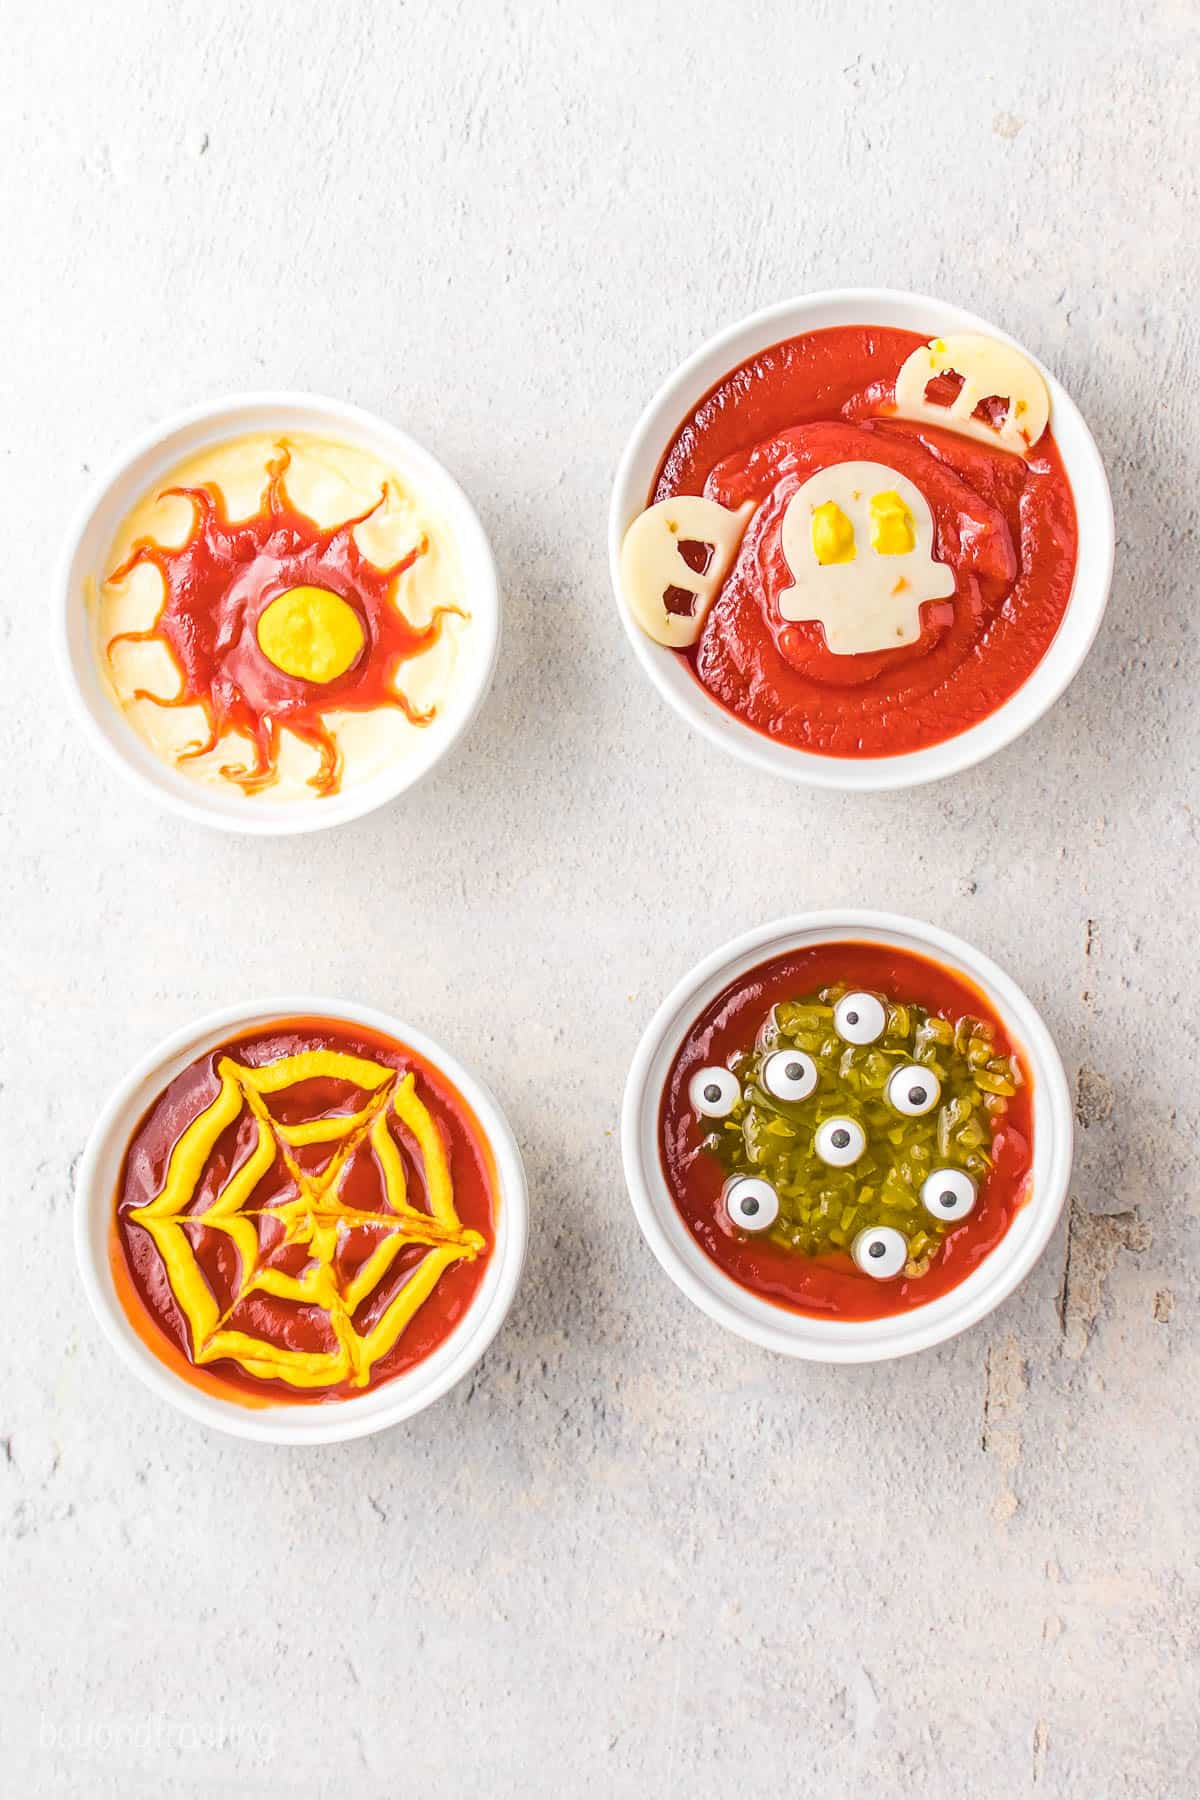 A bowl of spiderweb dip, a bowl of bloodshot eye dip, a bowl of ghost dip and a bowl of monster puddle dip on a countertop